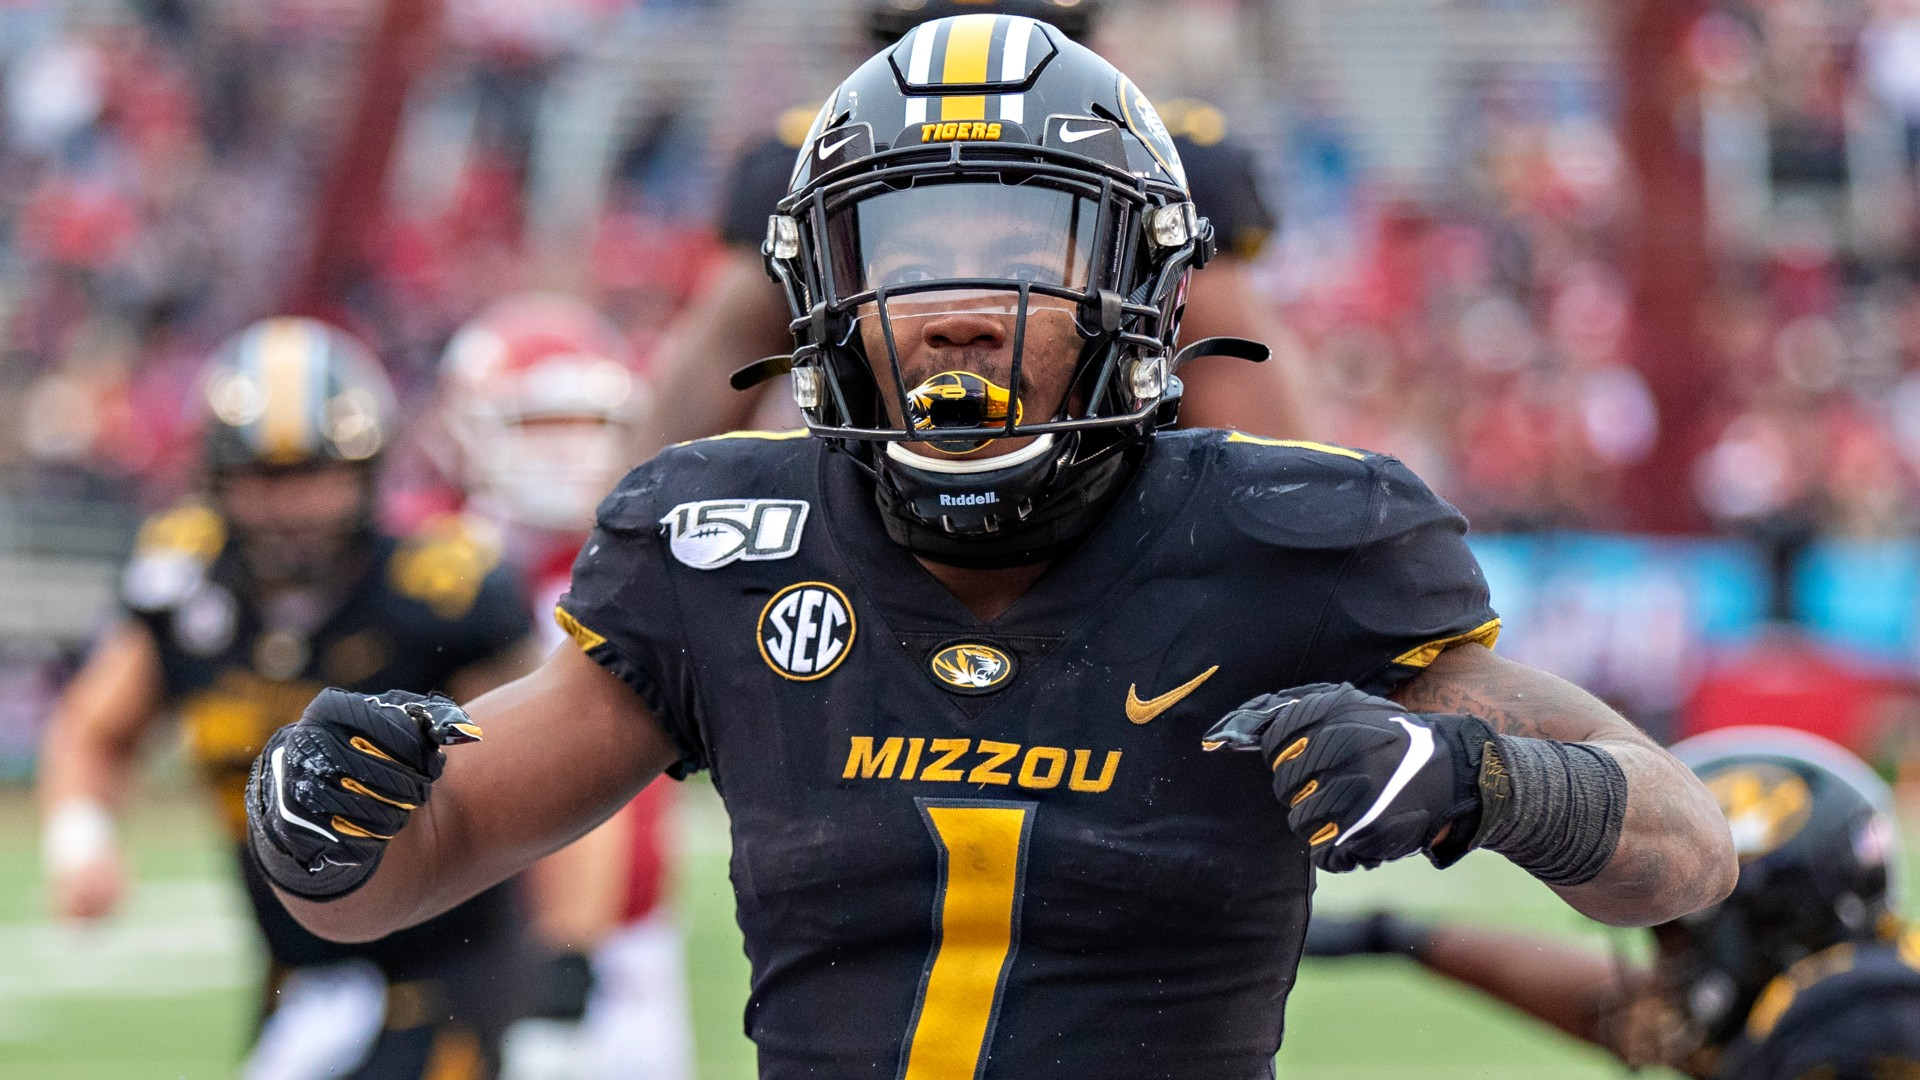 College Football Odds & Picks for Missouri vs. South Carolina: Saturday's Betting Value on the Gamecocks article feature image